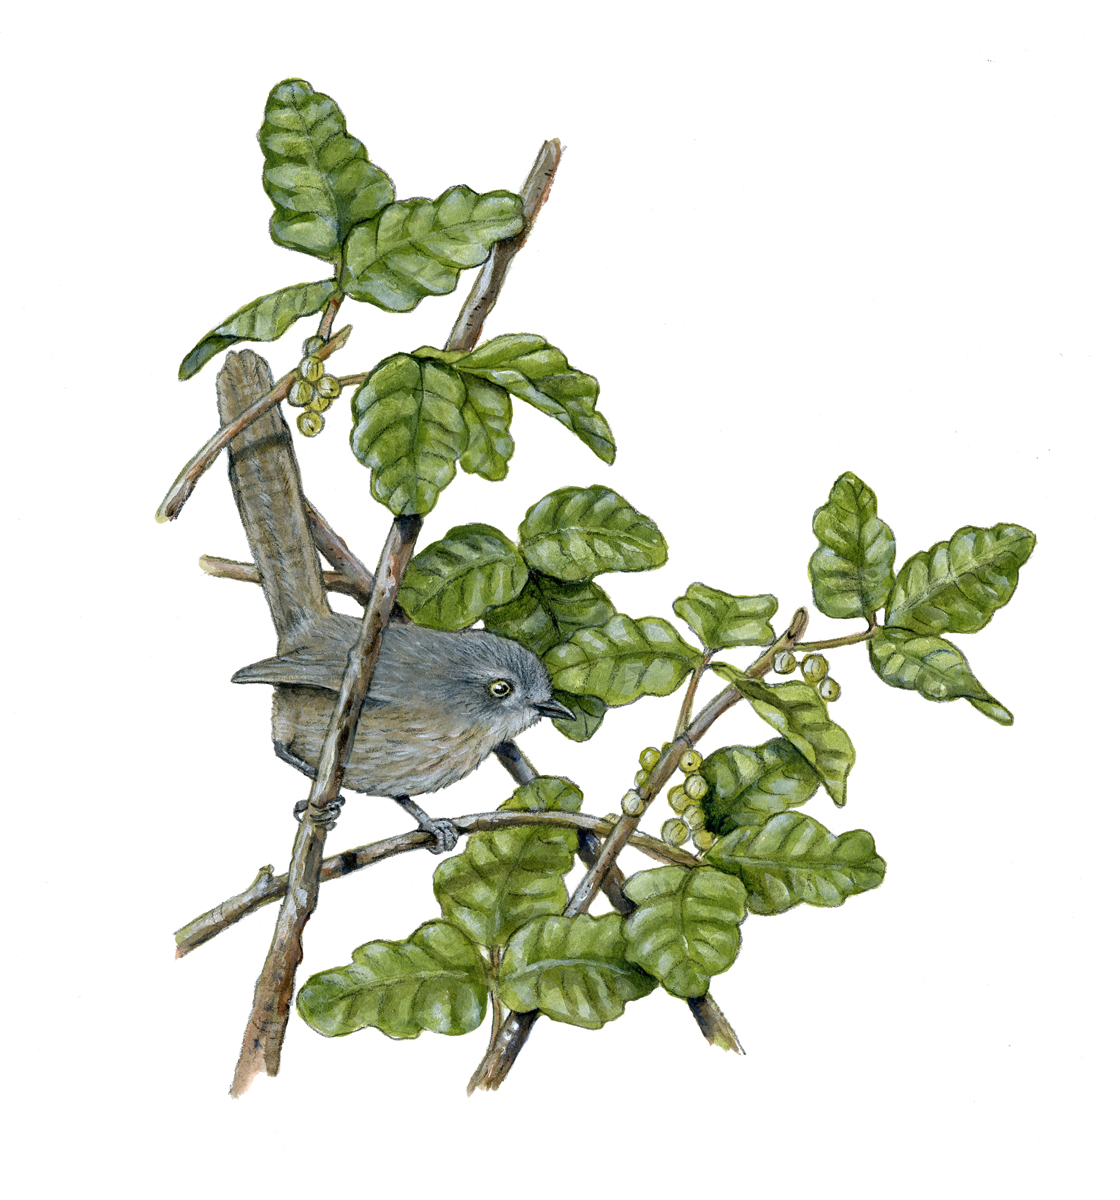 Wrentit in Poison Oak. Illustration by Peter Gaede.